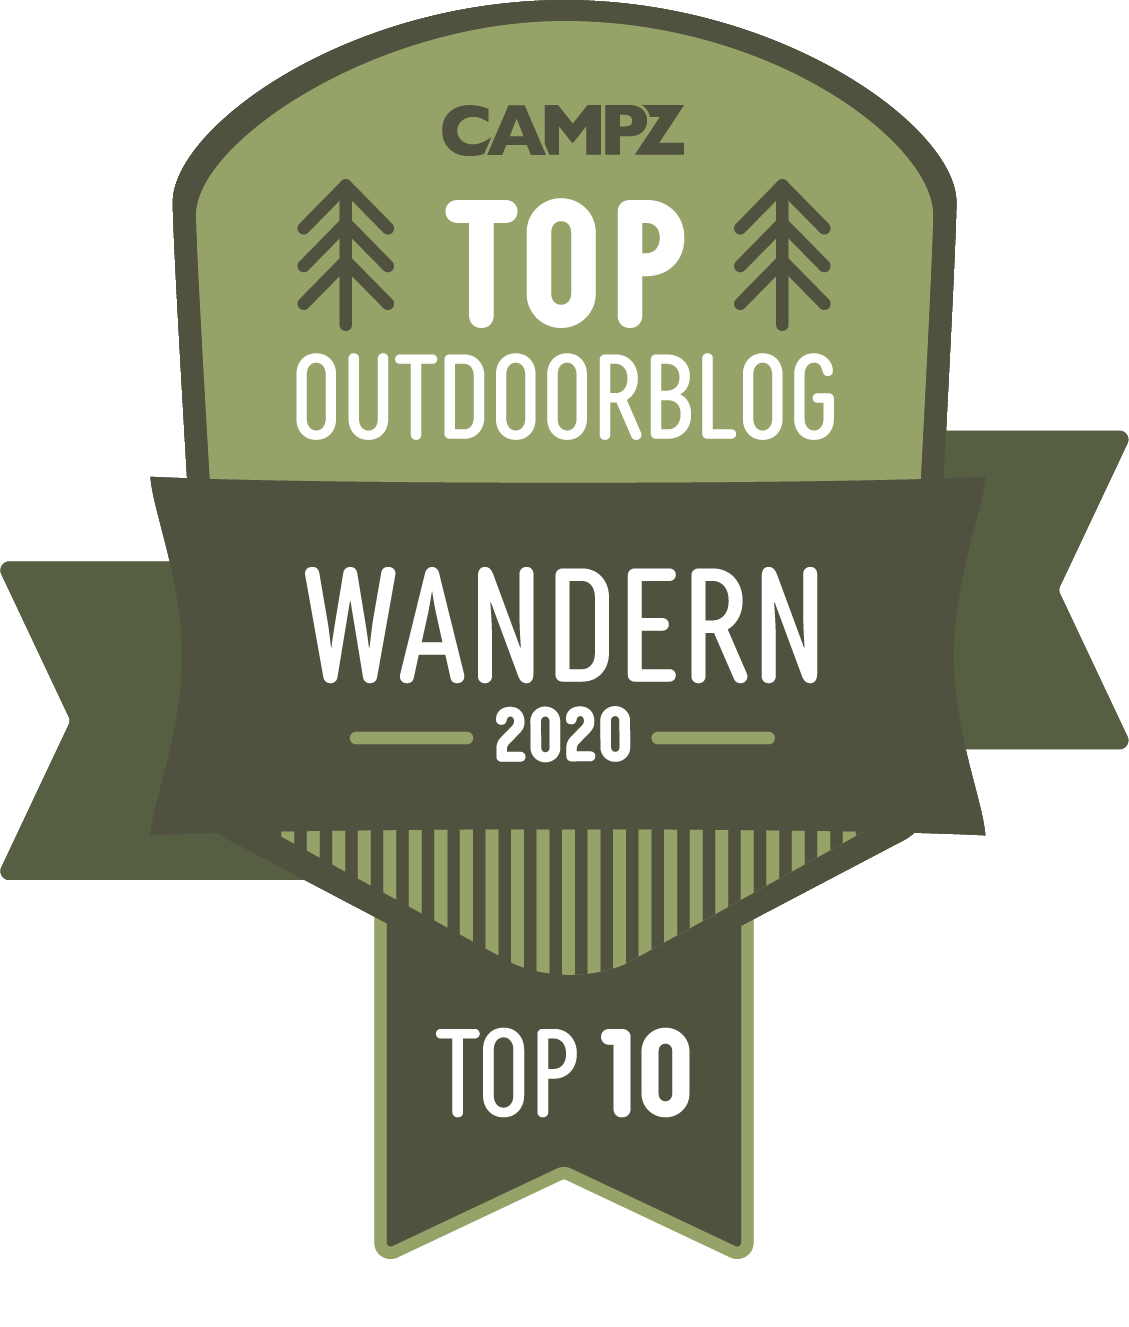 CAMPZ Blogwahl 2020 - Top 10 Wander-Blogs